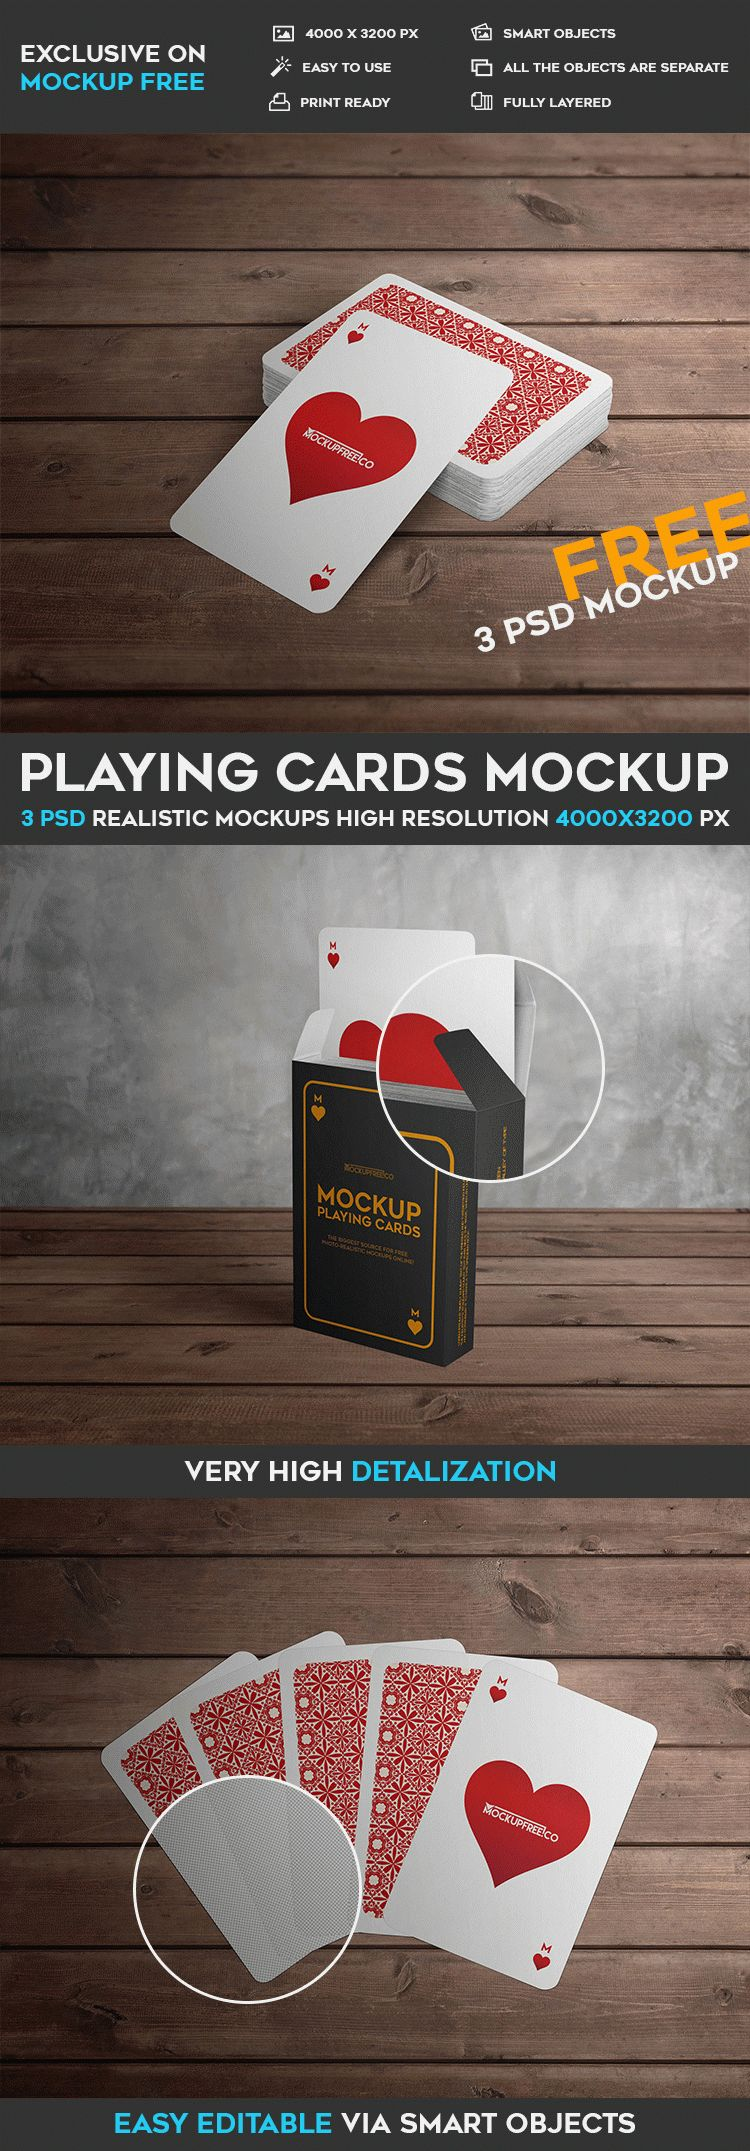 playing cards 3 free psd mockups free psd templates. Black Bedroom Furniture Sets. Home Design Ideas